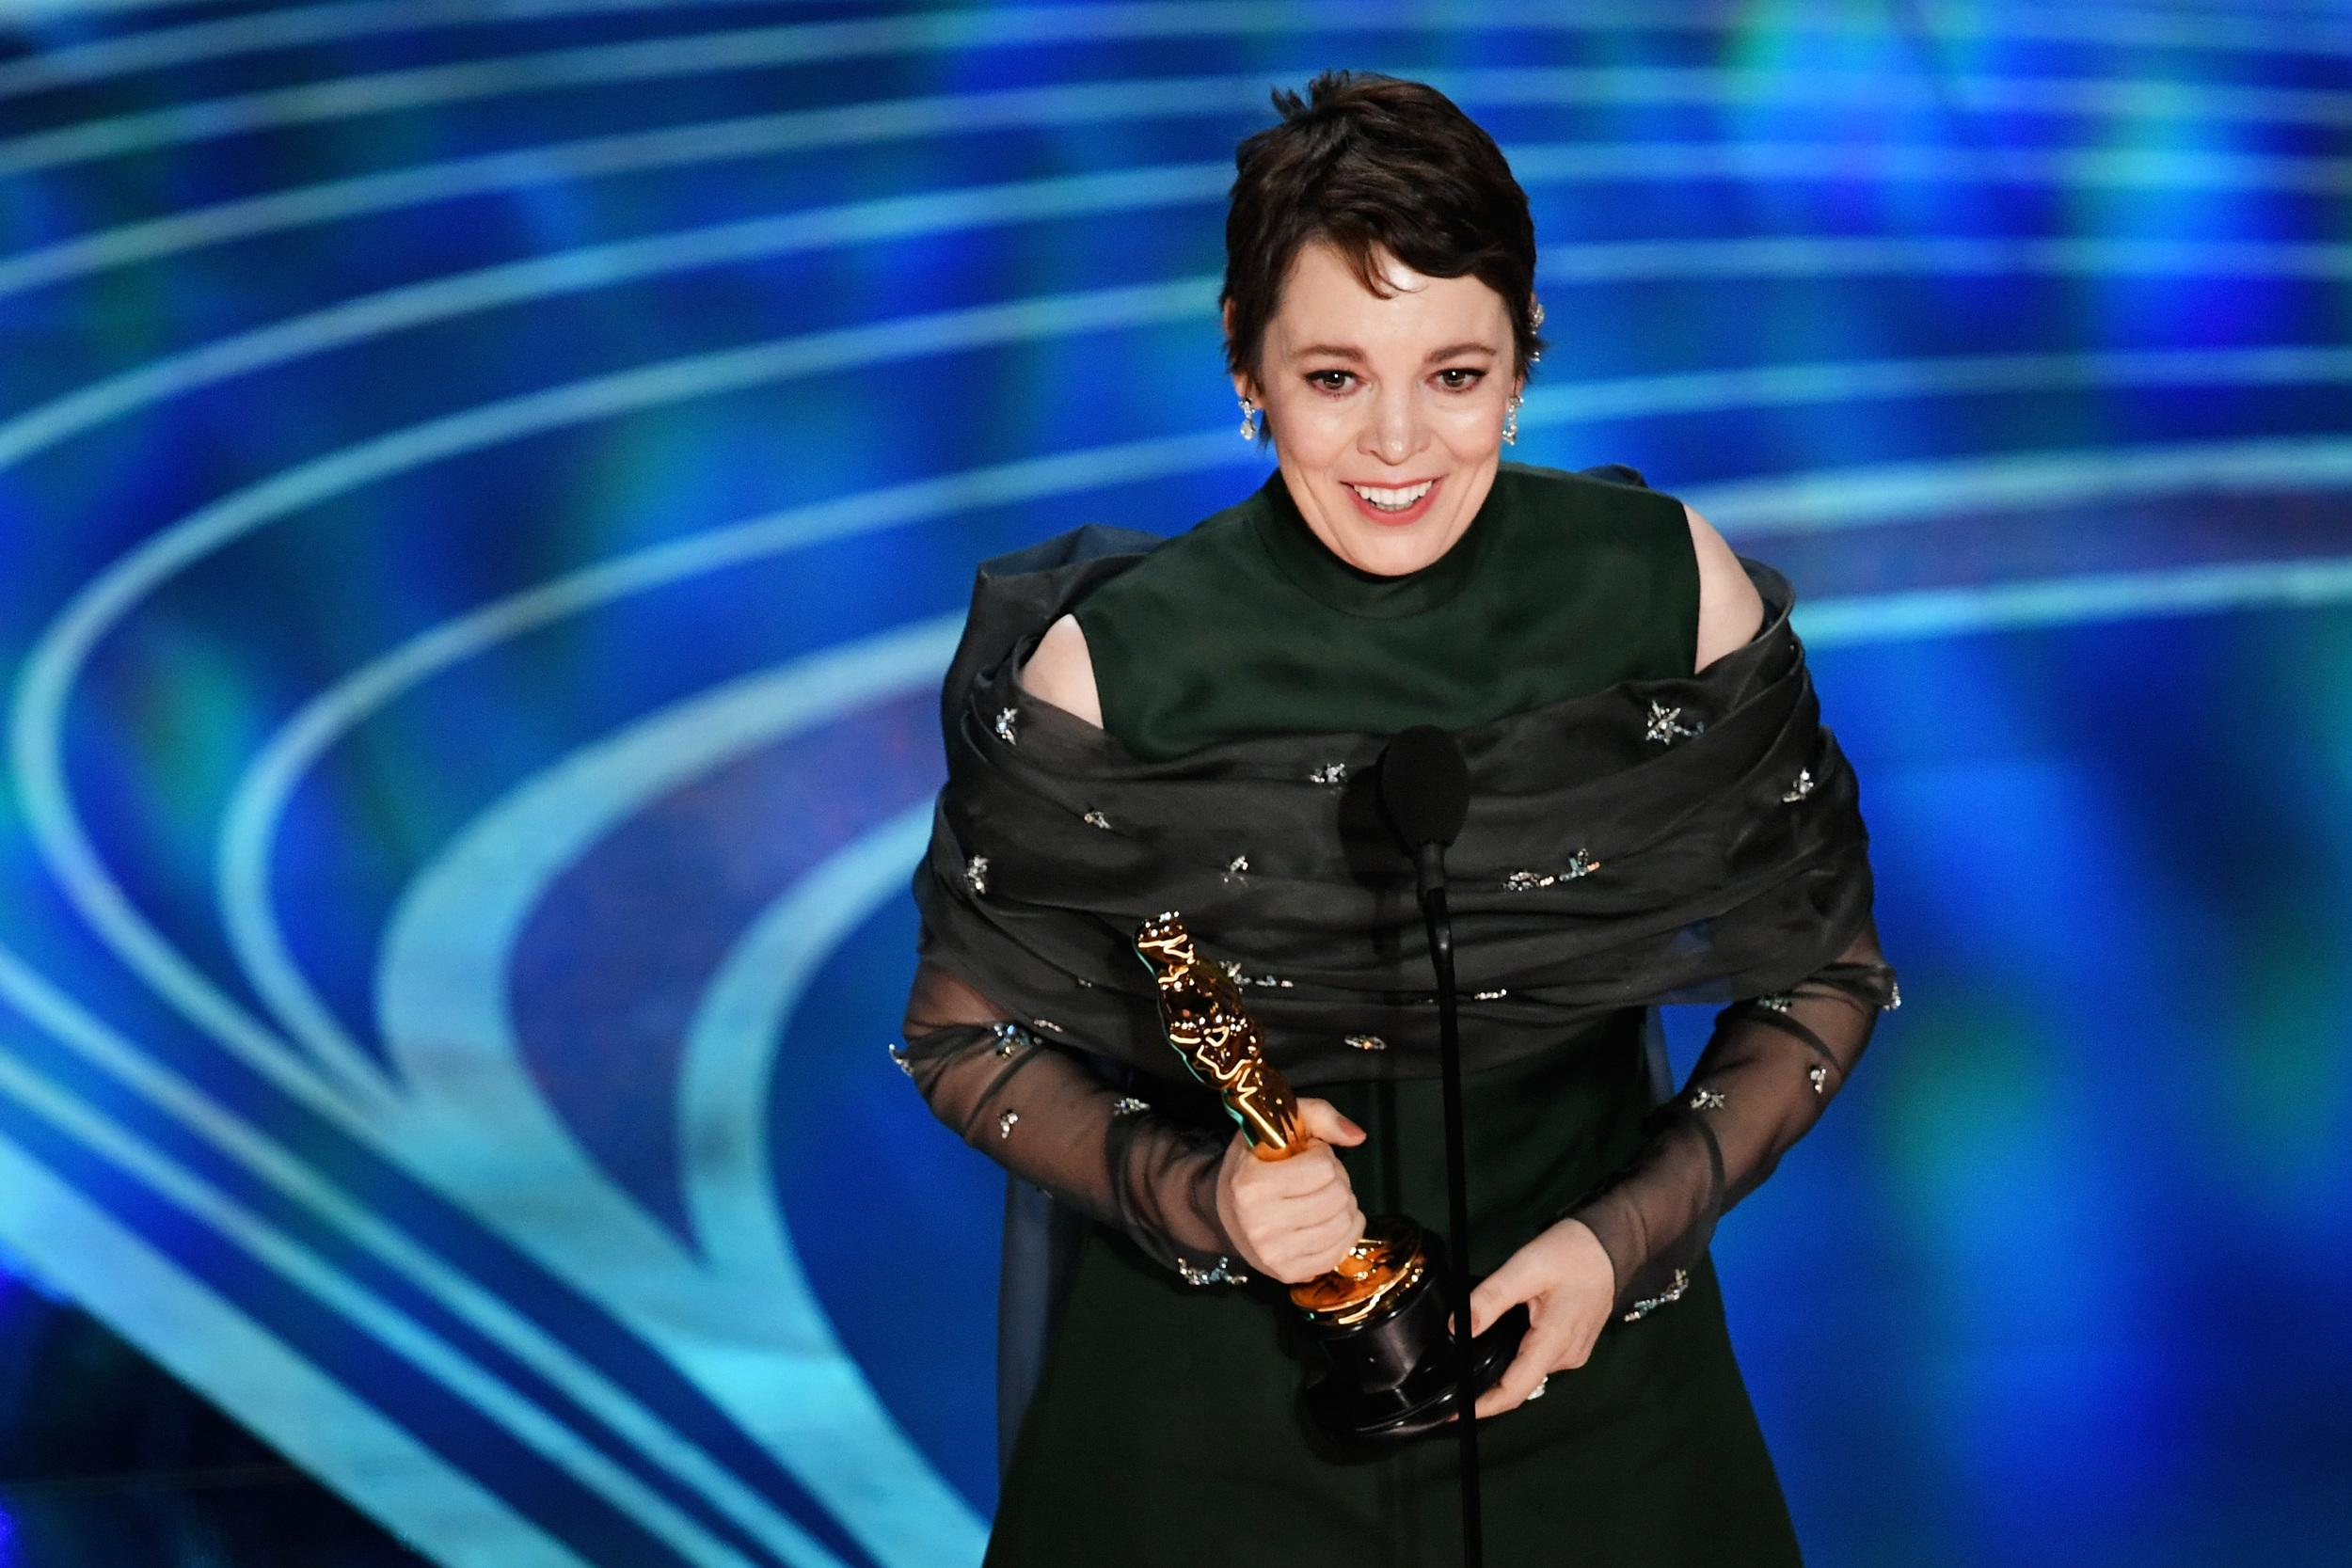 HOLLYWOOD, CALIFORNIA - FEBRUARY 24: Olivia Colman accepts the Actress in a Leading Role award for 'The Favourite' onstage during the 91st Annual Academy Awards at Dolby Theatre on February 24, 2019 in Hollywood, California. (Photo by Kevin Winter/Getty Images)